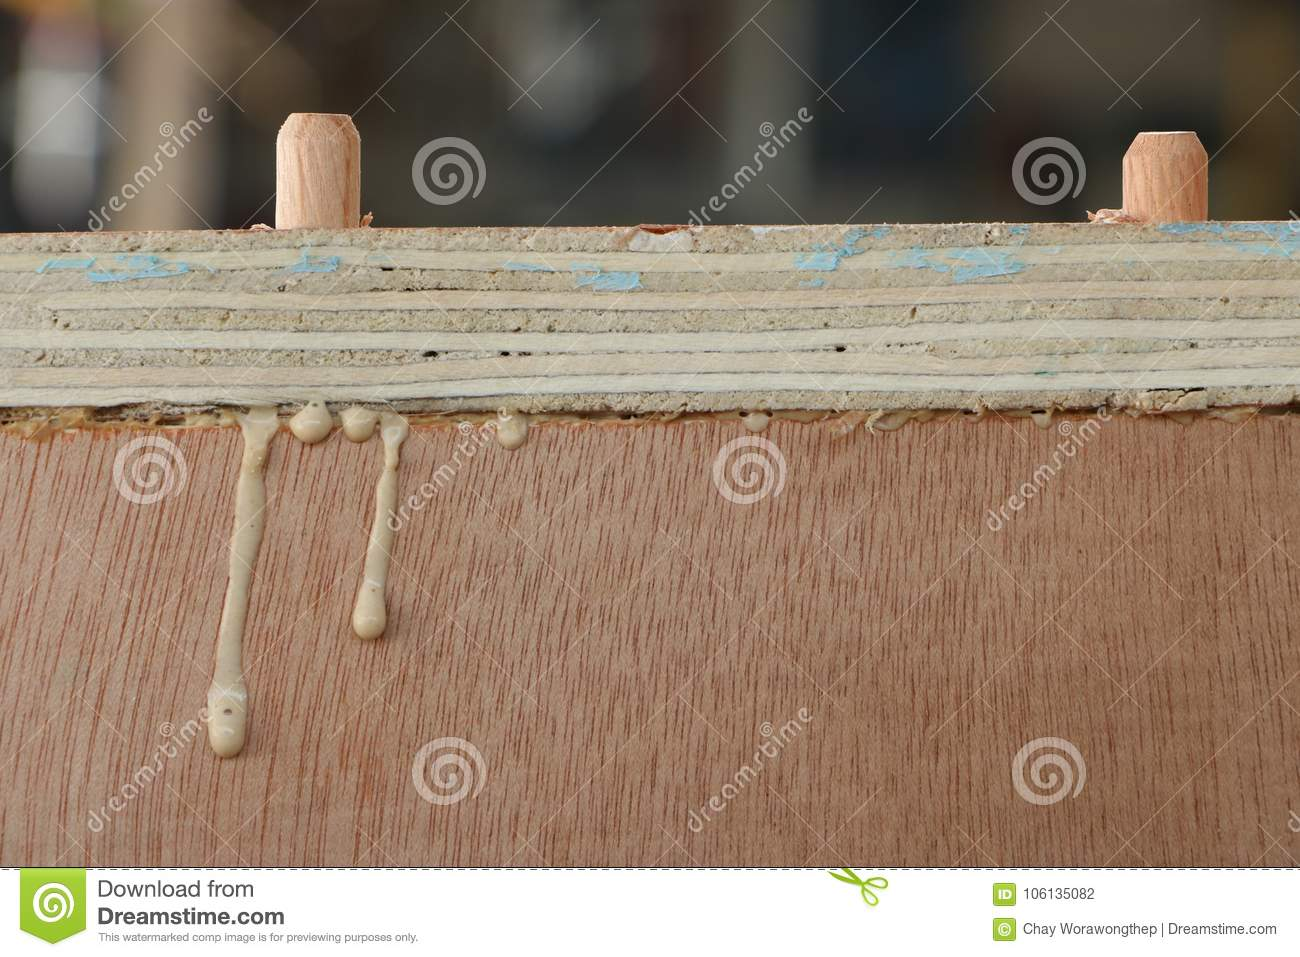 Drops Of Glue While Assembling A New Wooden Furniture Stock Photo Image 106135082